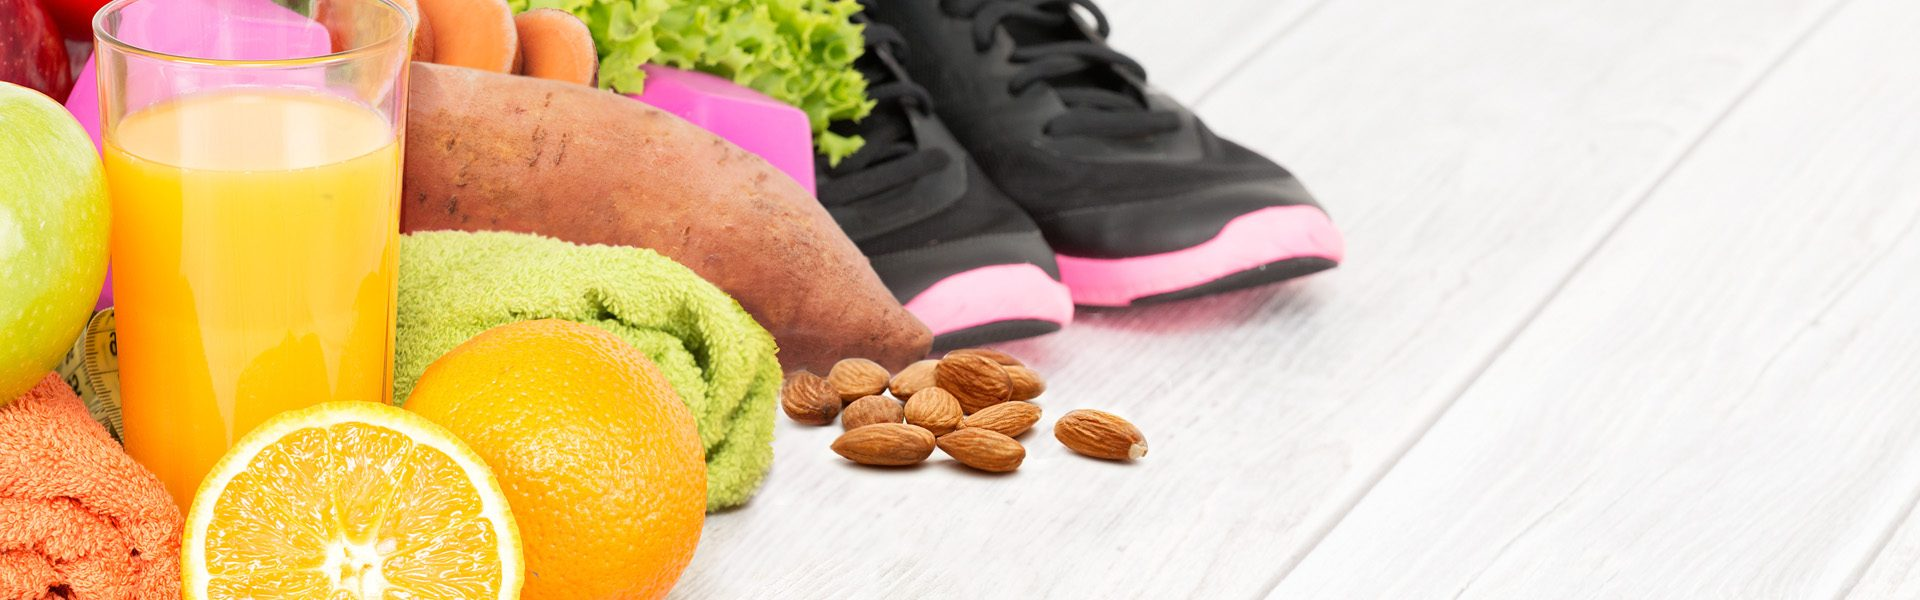 runner's nutrition what and when to eat